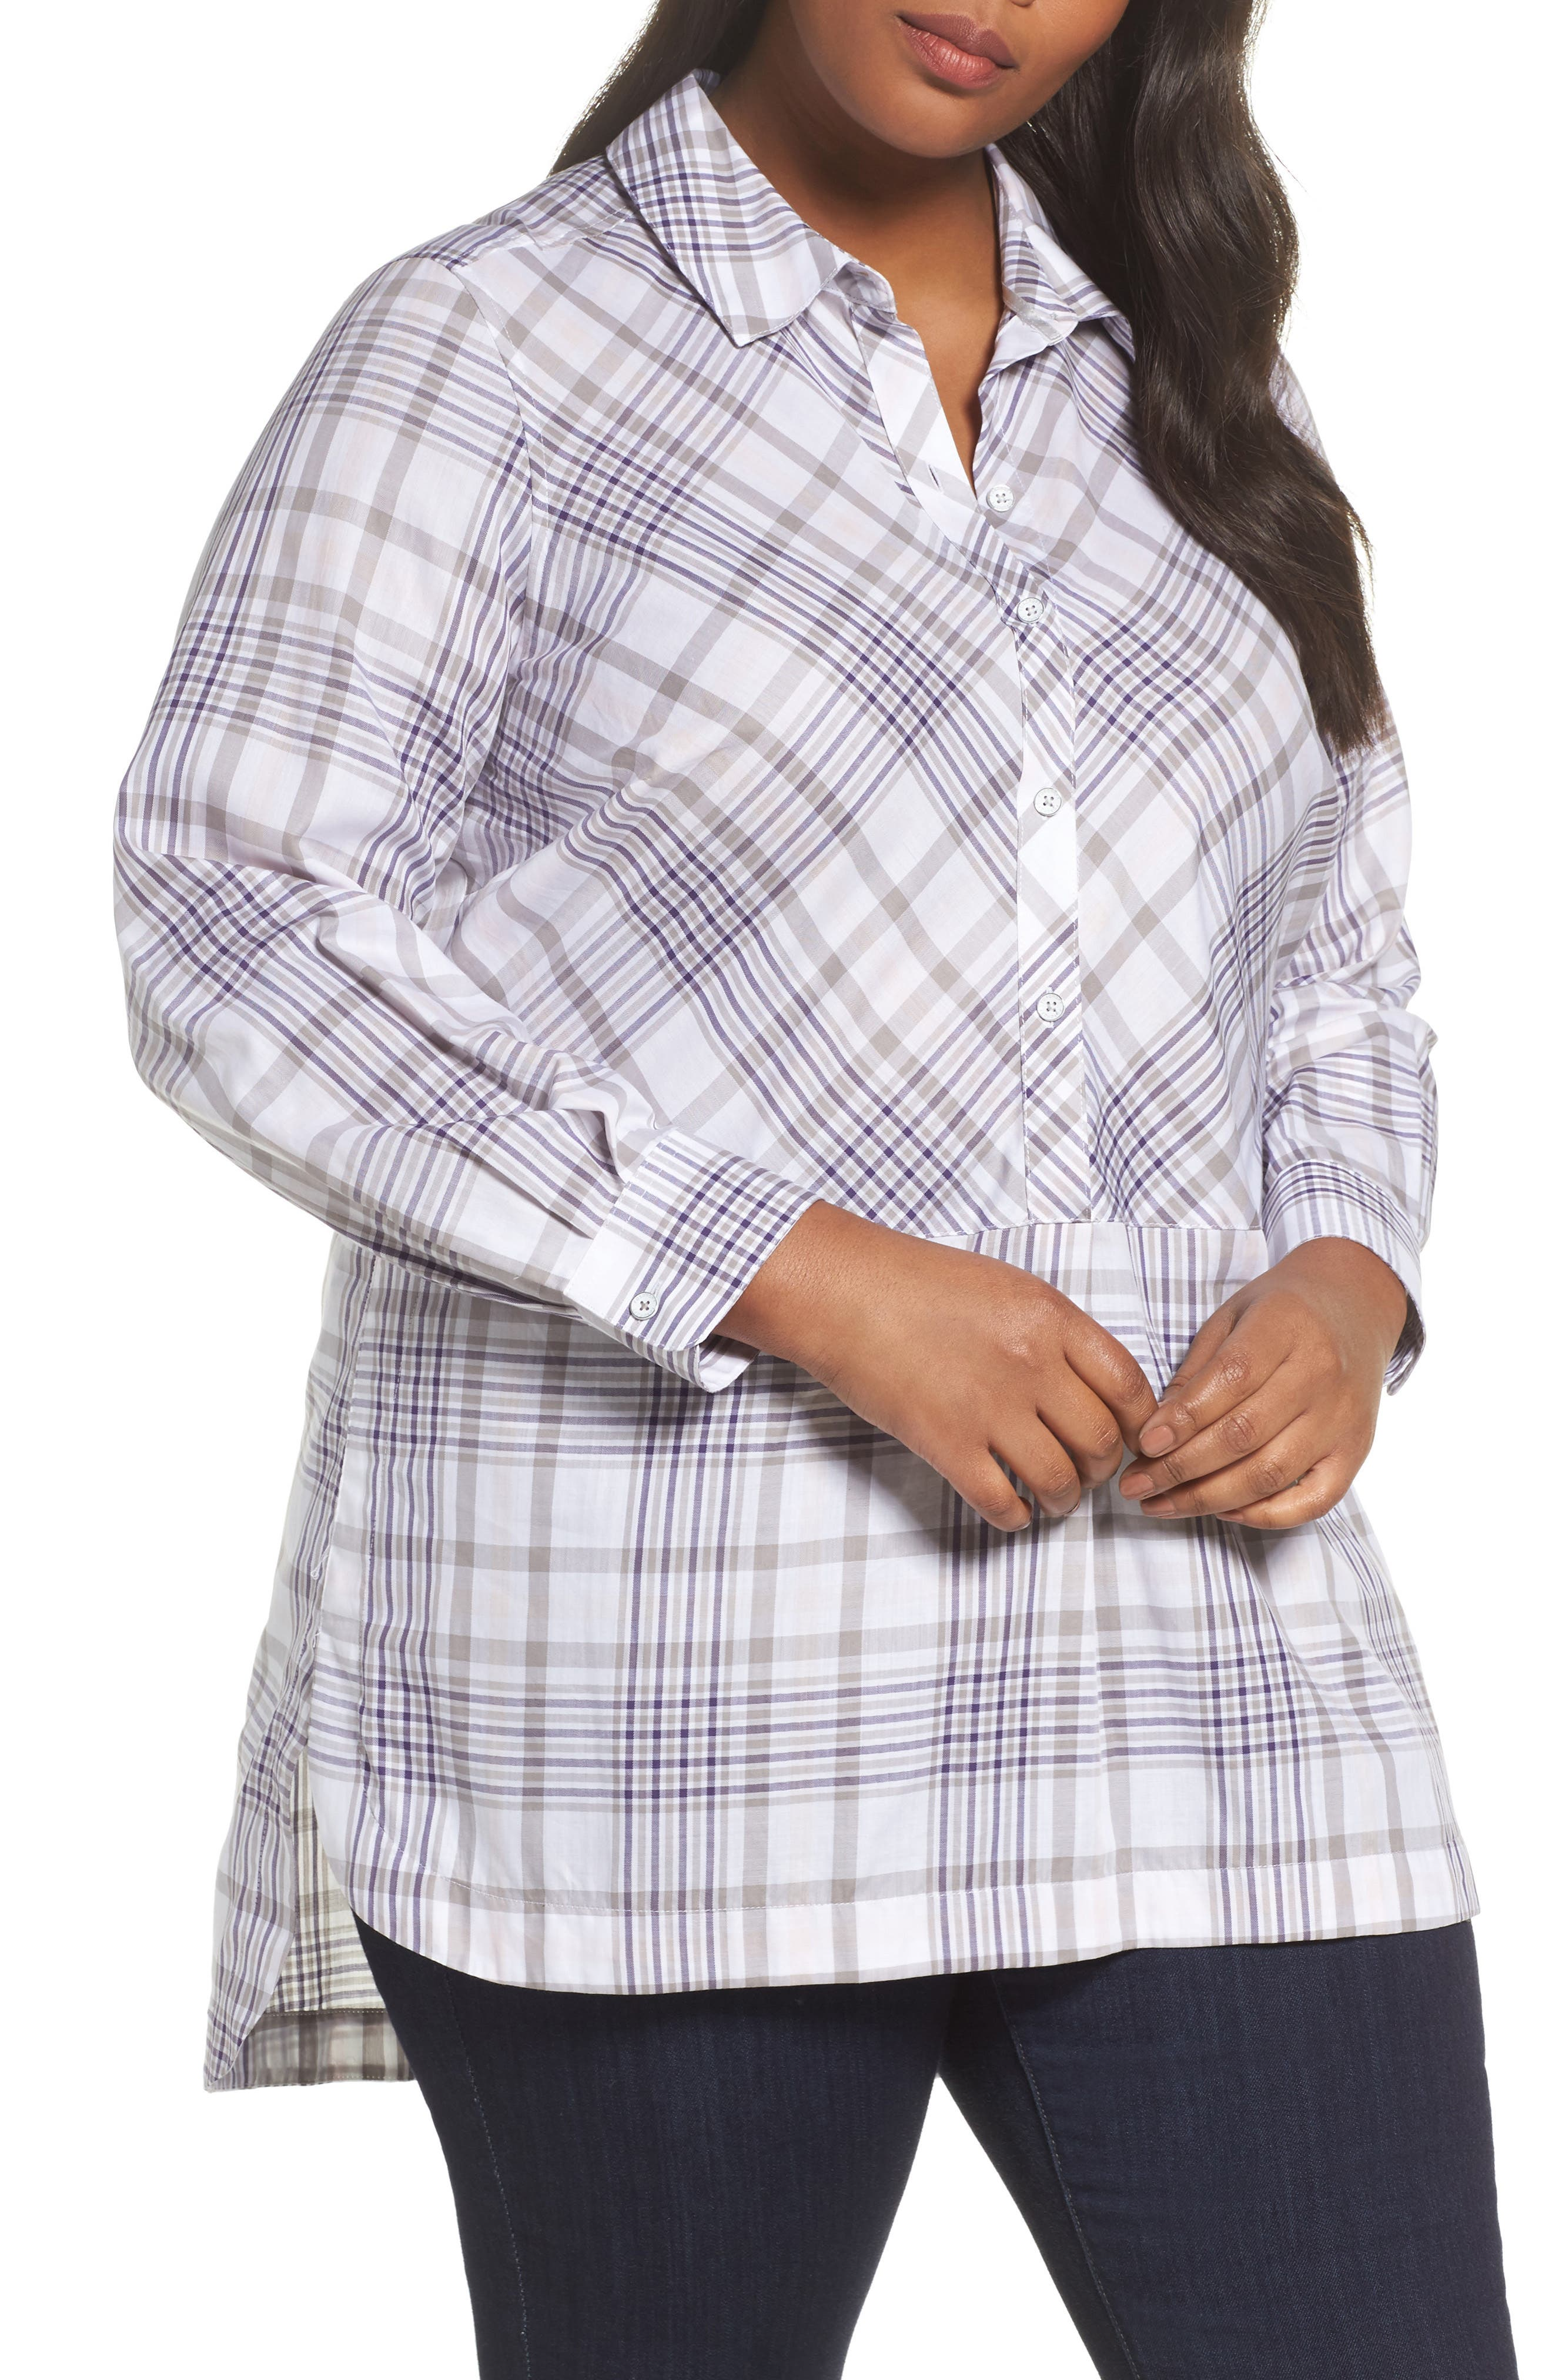 Maddy Winter Plaid Shirt,                         Main,                         color,